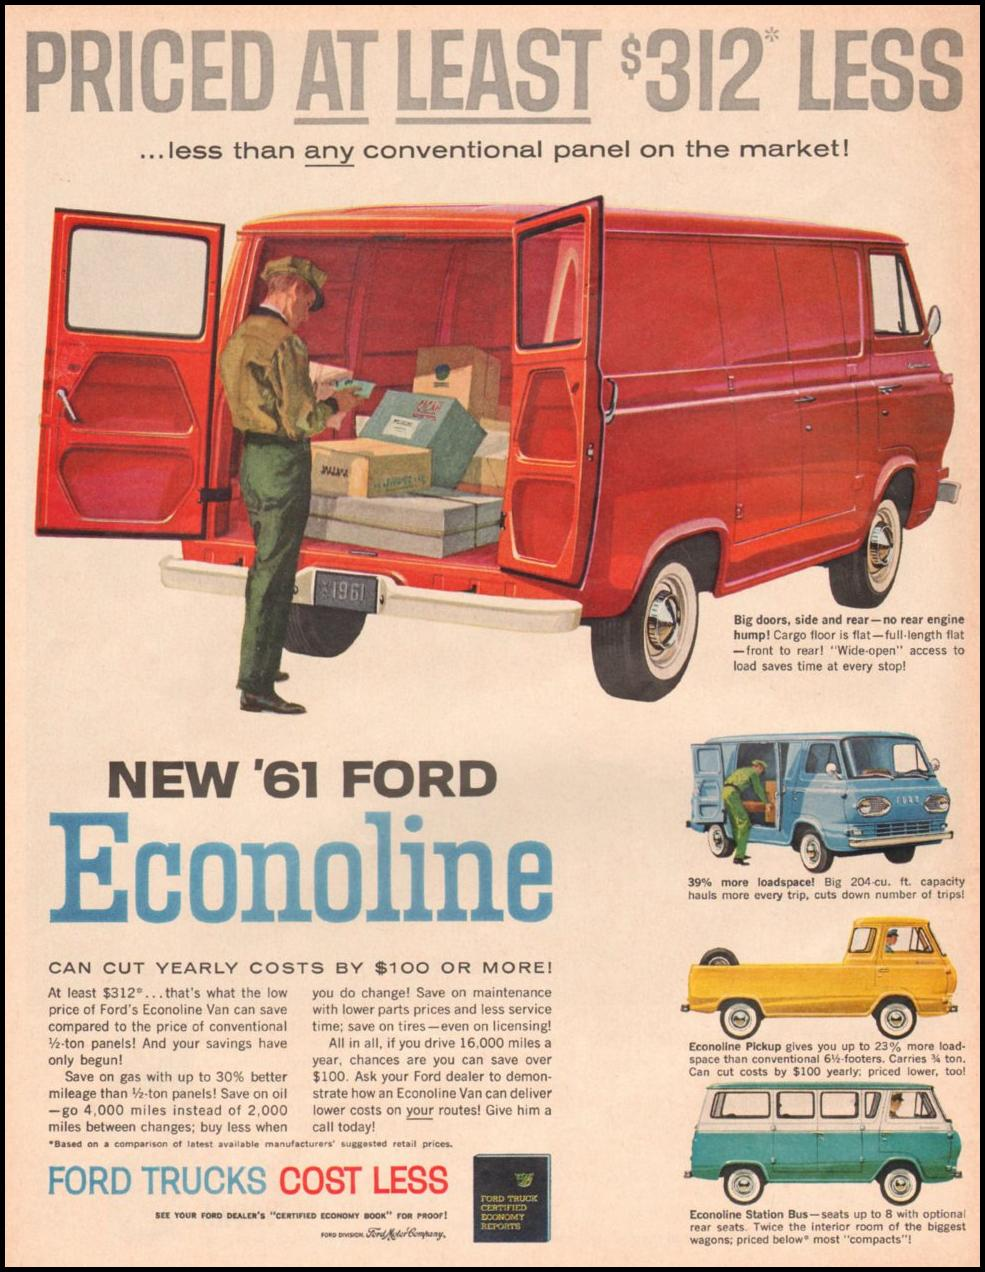 Ford Trucks Cost Less 1961 Econoline Pickup Truck Life 05